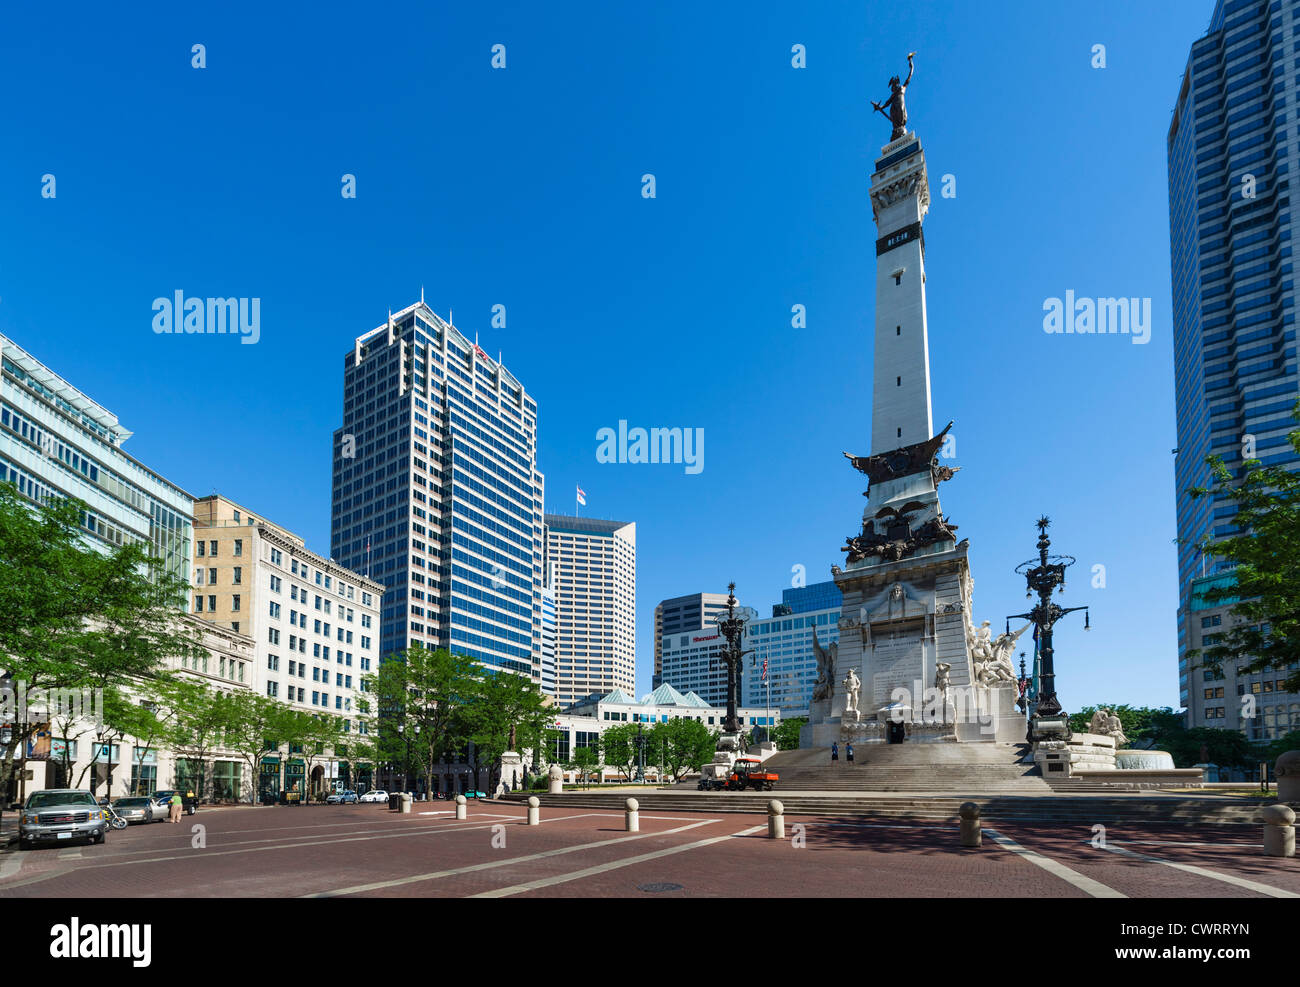 The Soldiers and Sailors Monument in Monument Circle, Indianapolis, Indiana, USA - Stock Image